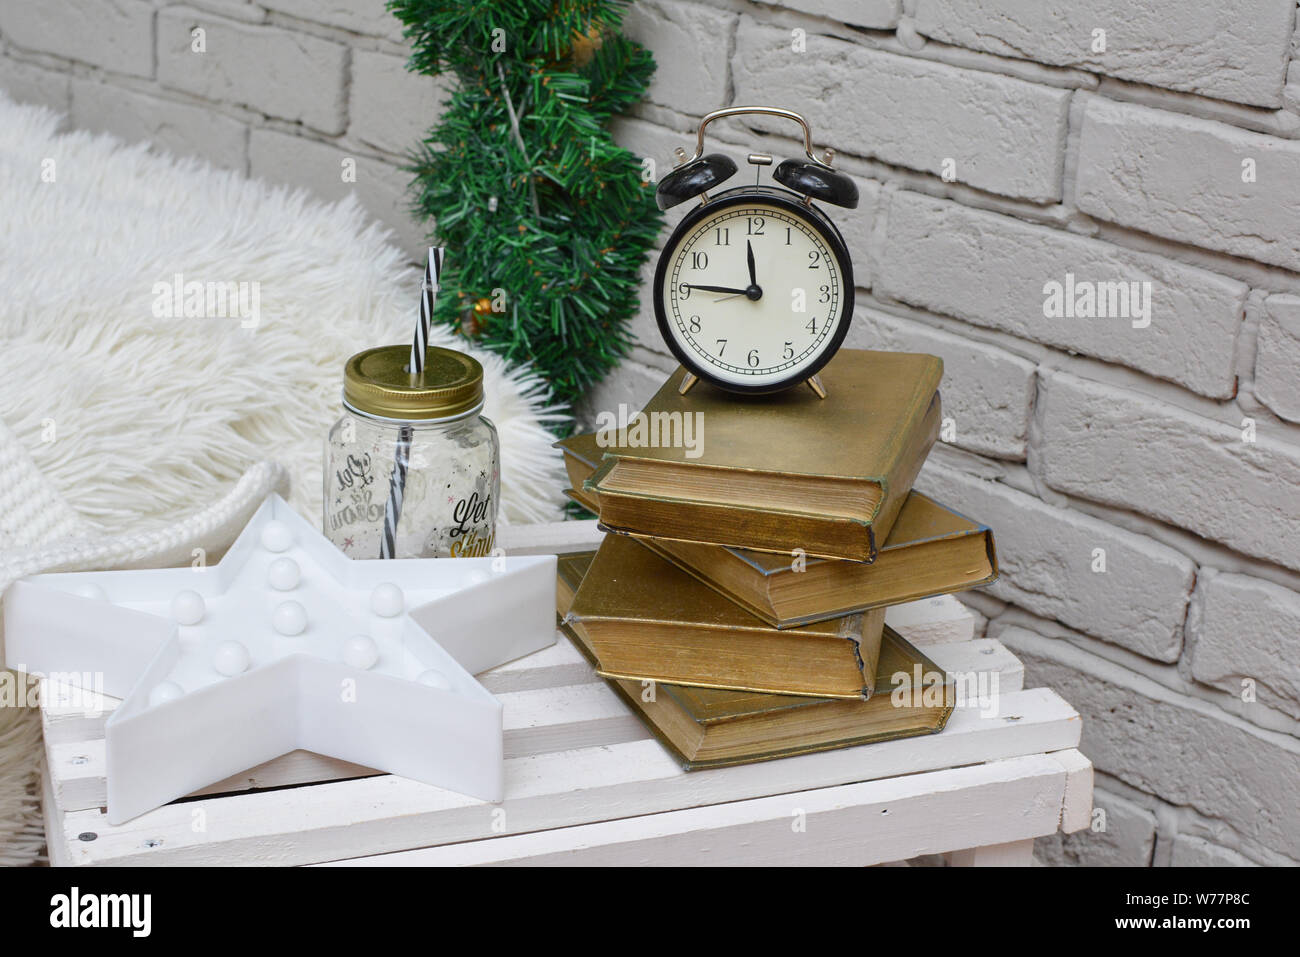 Vintage alarm clock in traditional study room showing fifteen to midnight. Happy New Year! Stock Photo